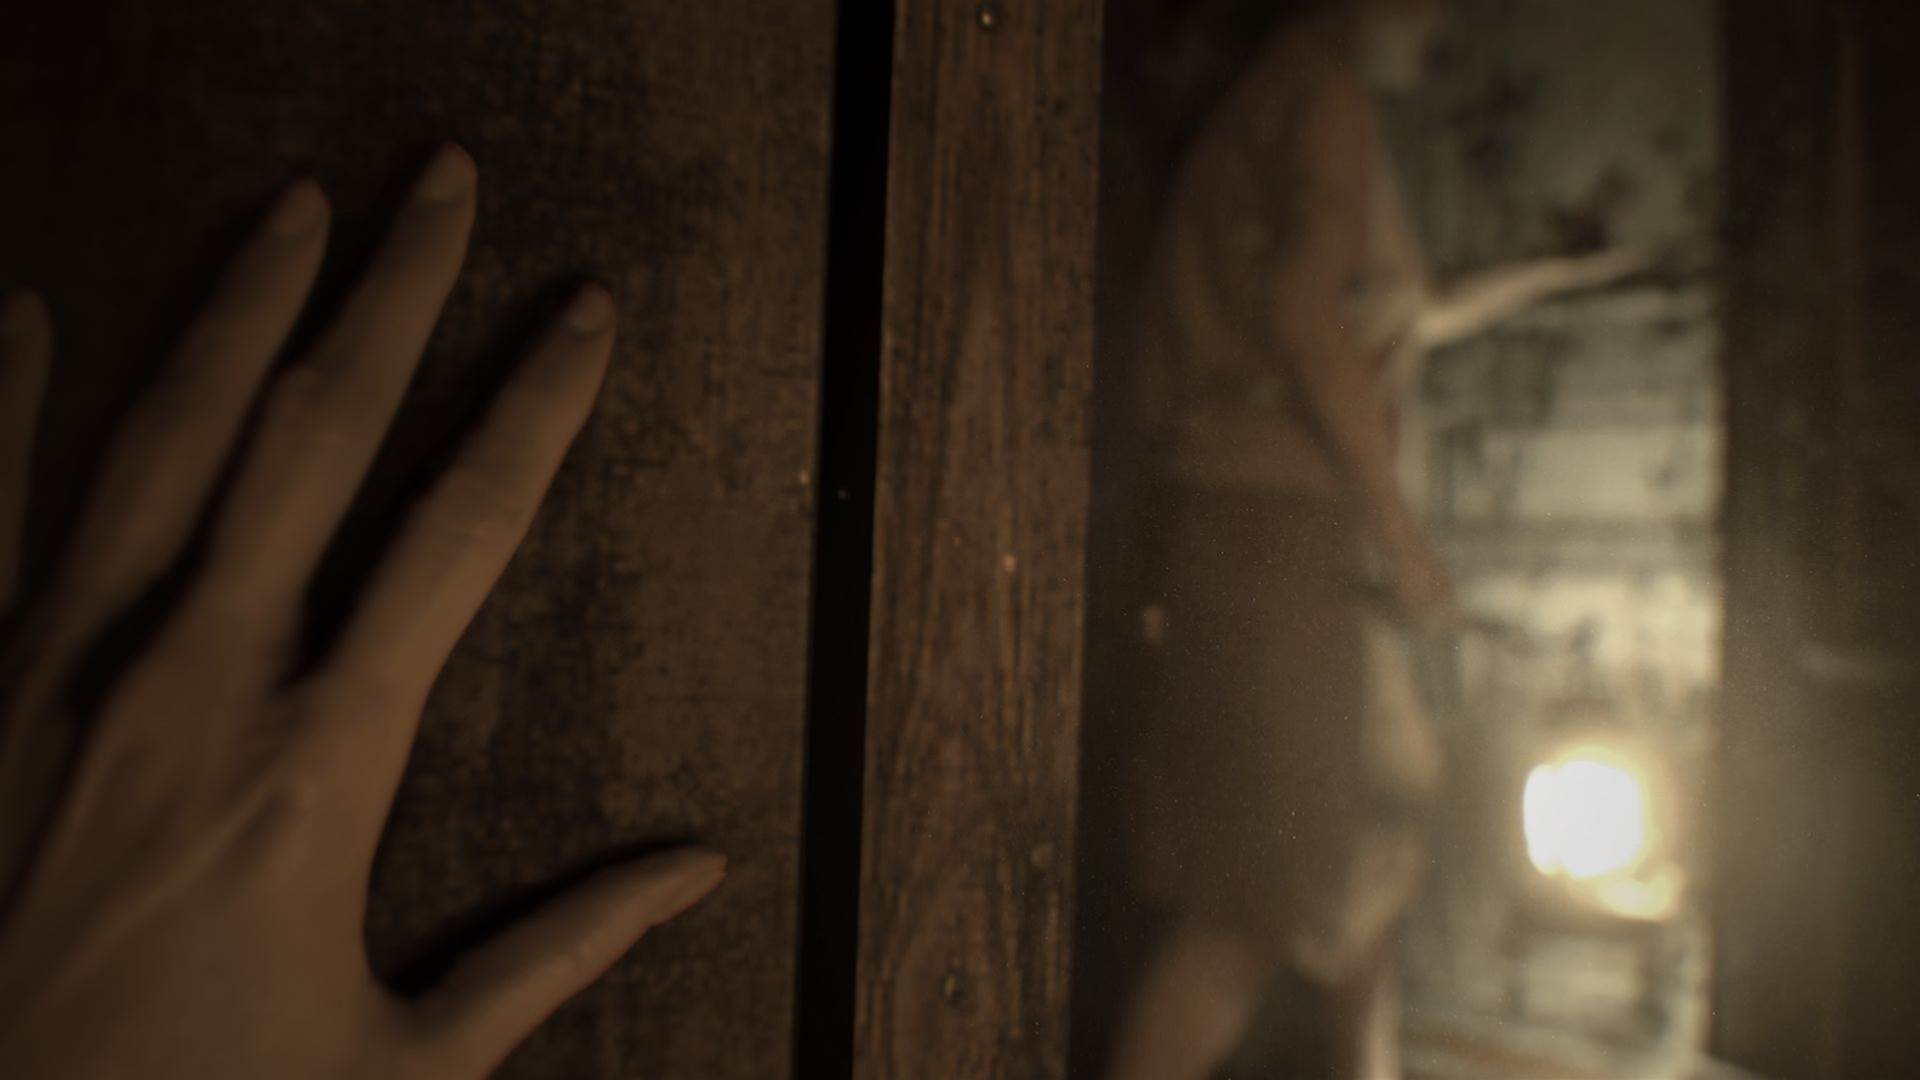 Review: Resident Evil 7 Biohazard will scare you silly